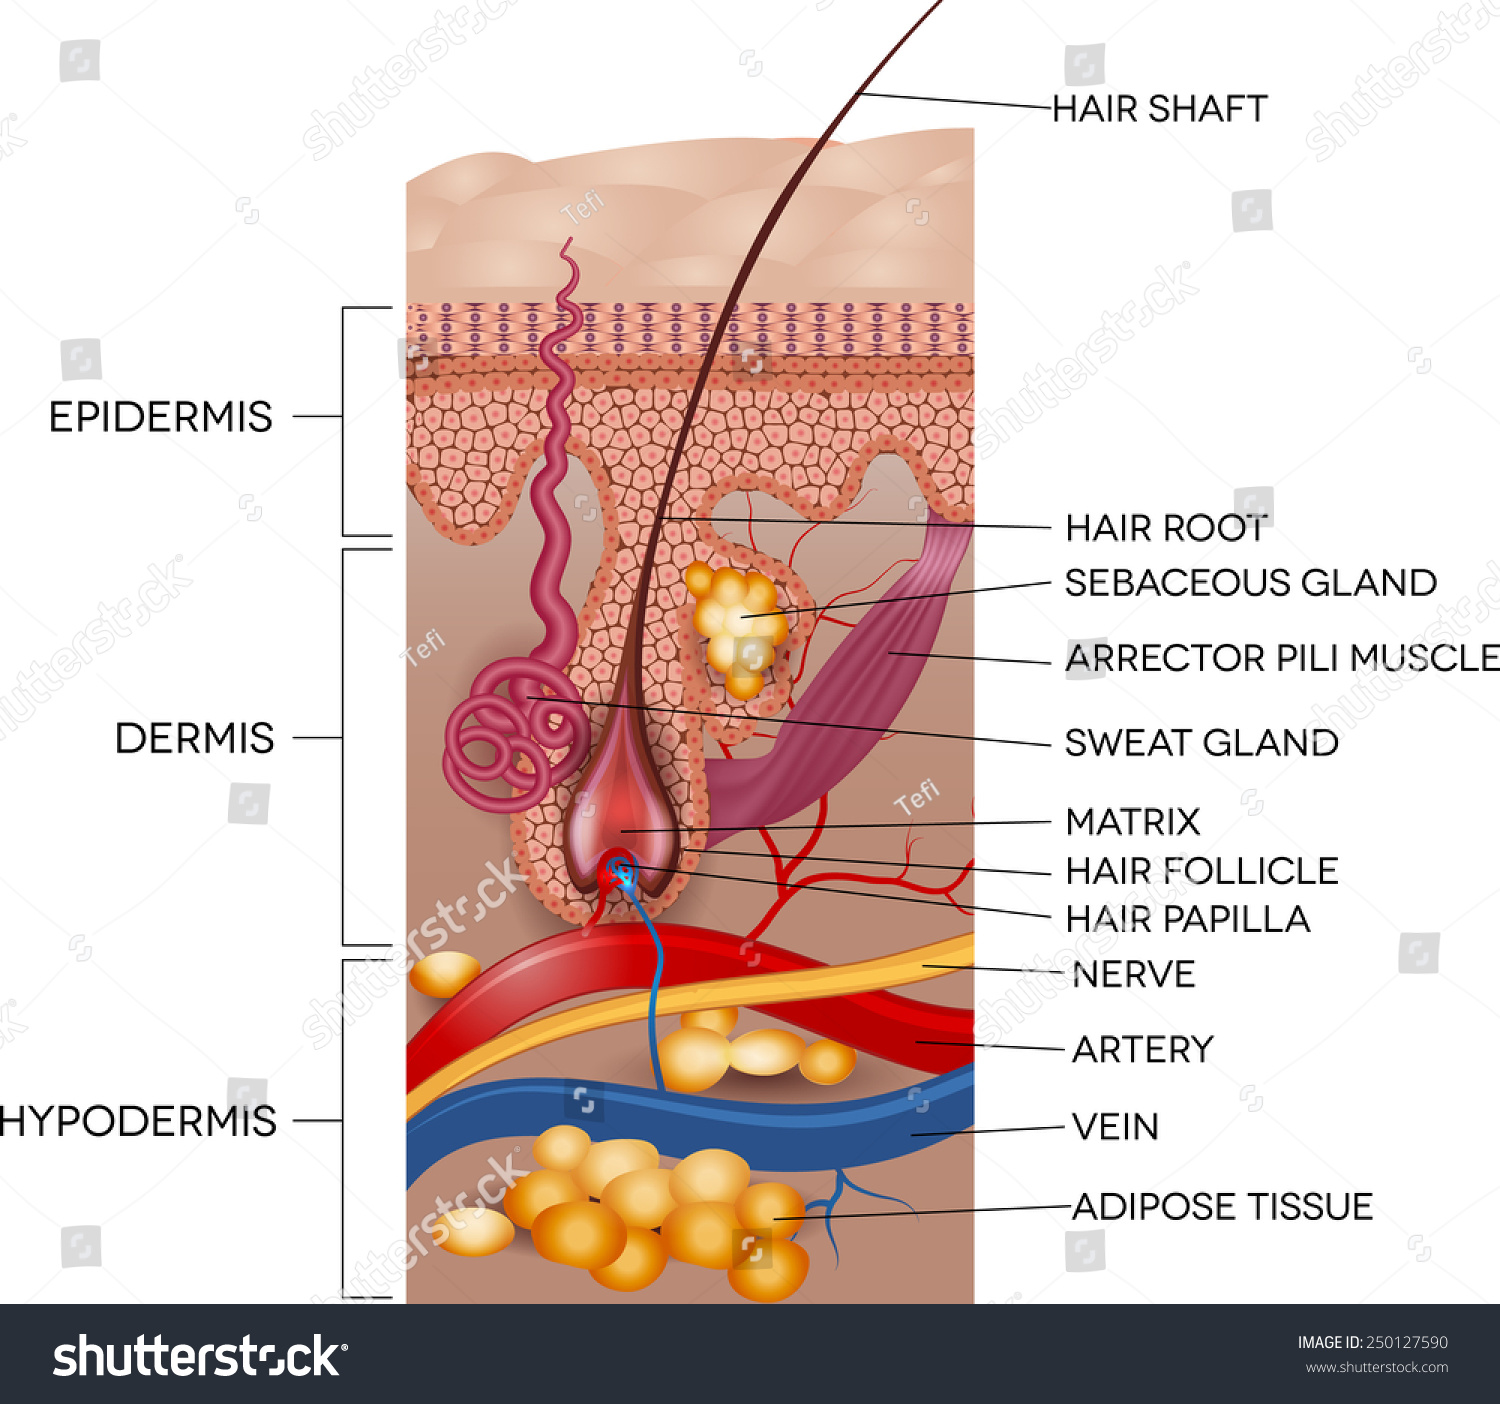 Labeled Skin Hair Anatomy Detailed Medical Stock Vector 250127590 ...